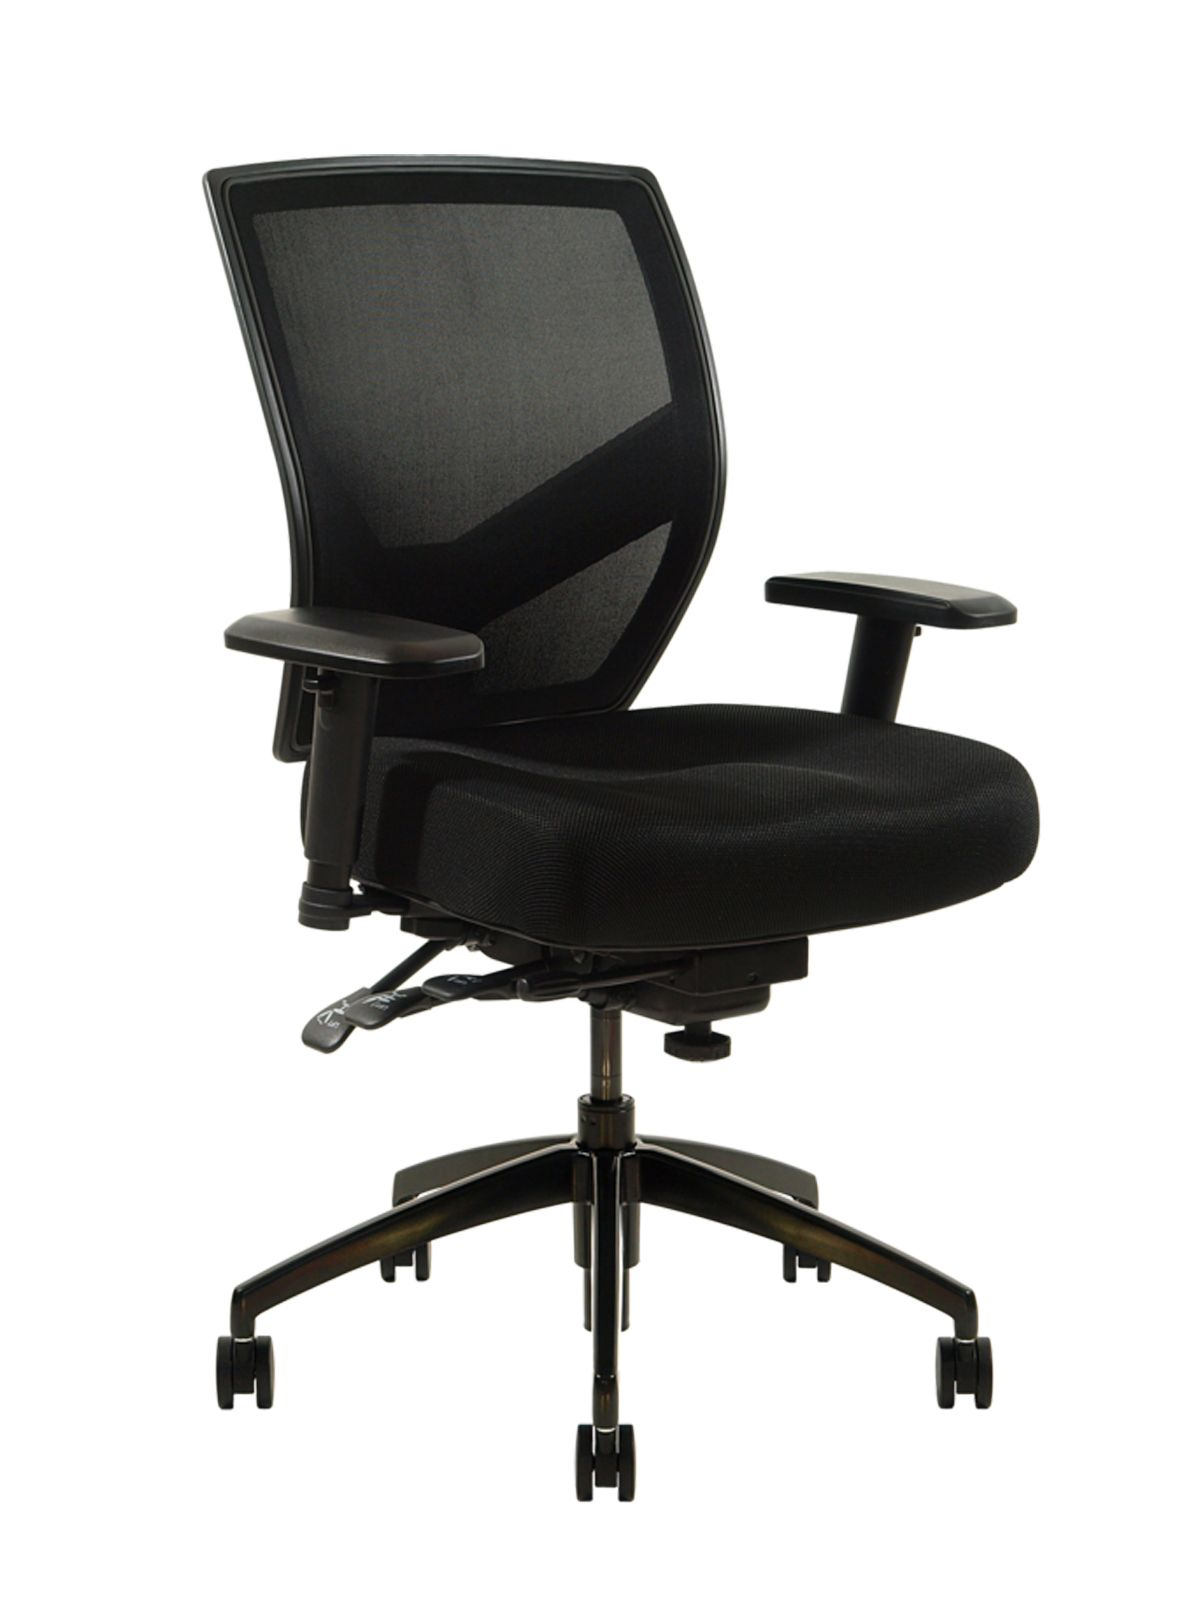 Farnam collection ergo seating only 289 at all makes